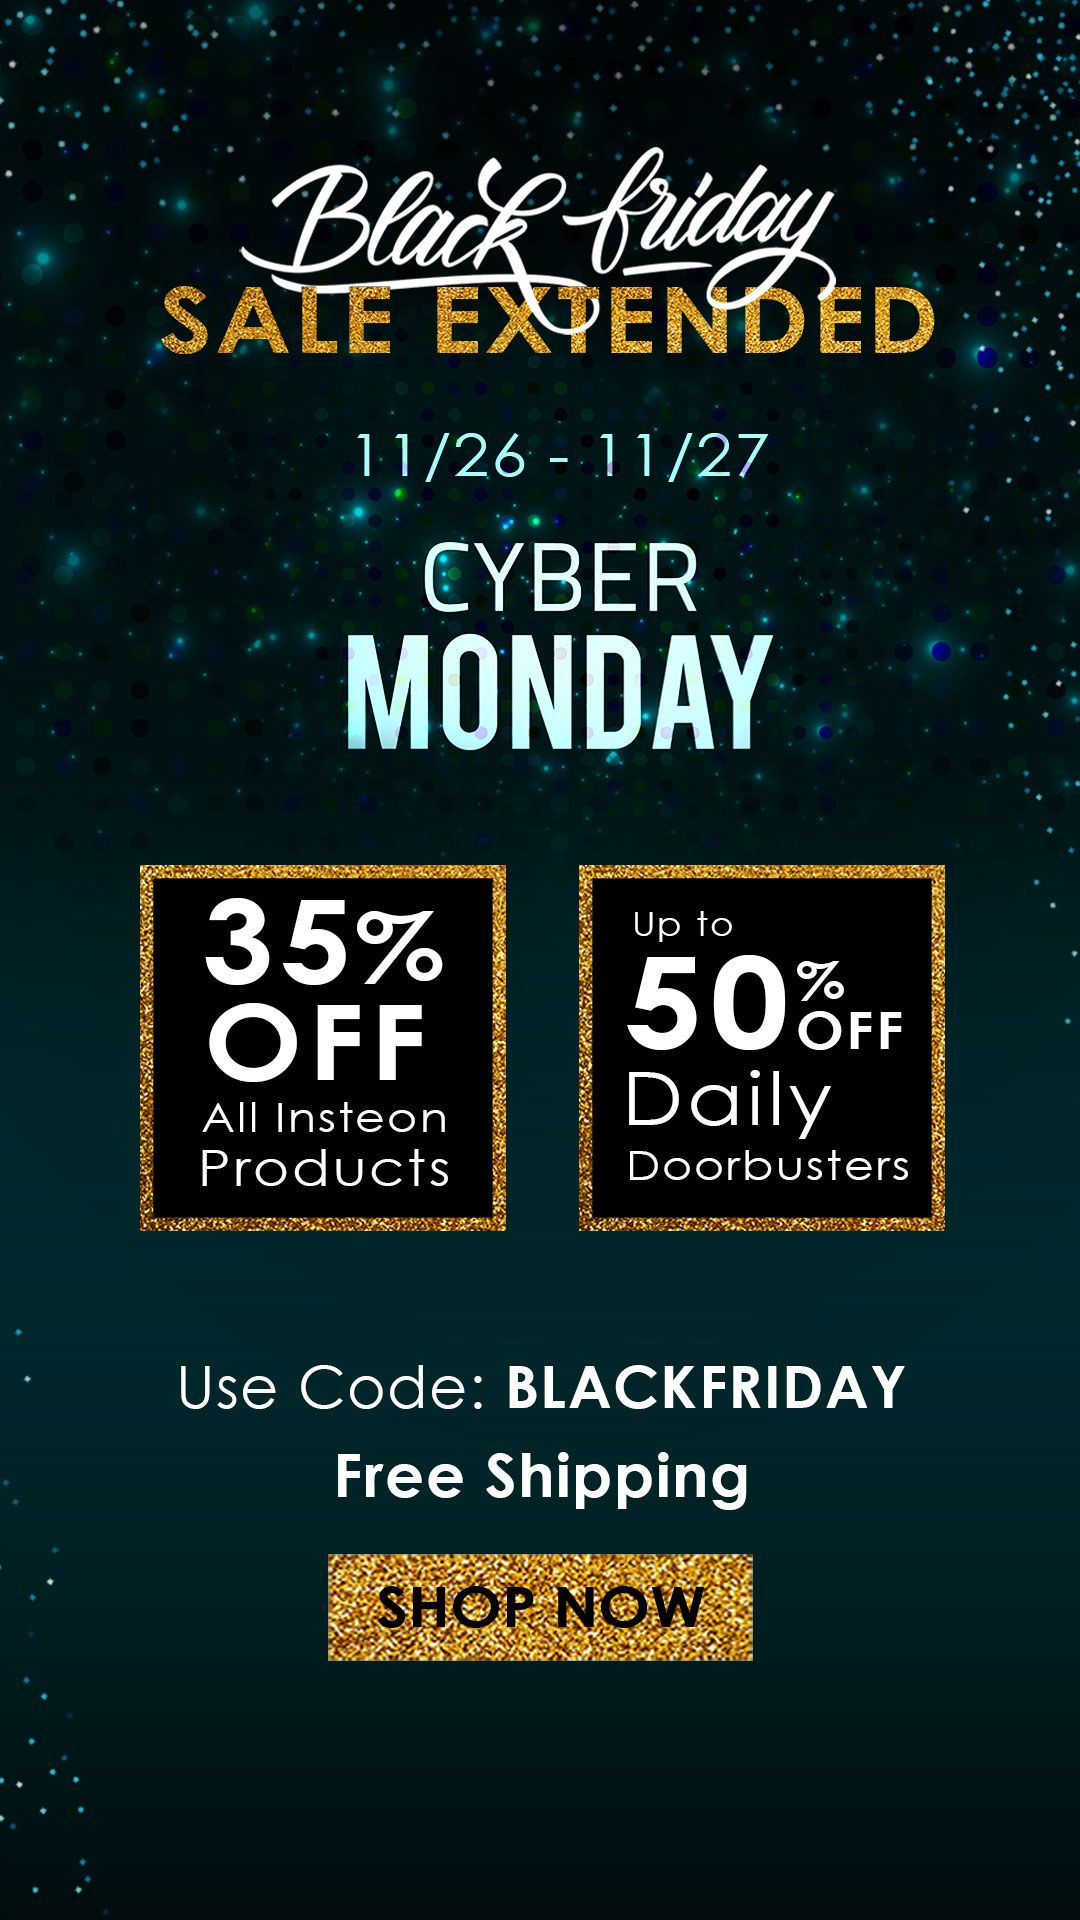 Sale Extended For Cyber Monday 35 Off All Insteon Up To 50 Off Doorbusters Use Code Blackfriday At Checkou Black Friday Black Friday Deals Cyber Monday